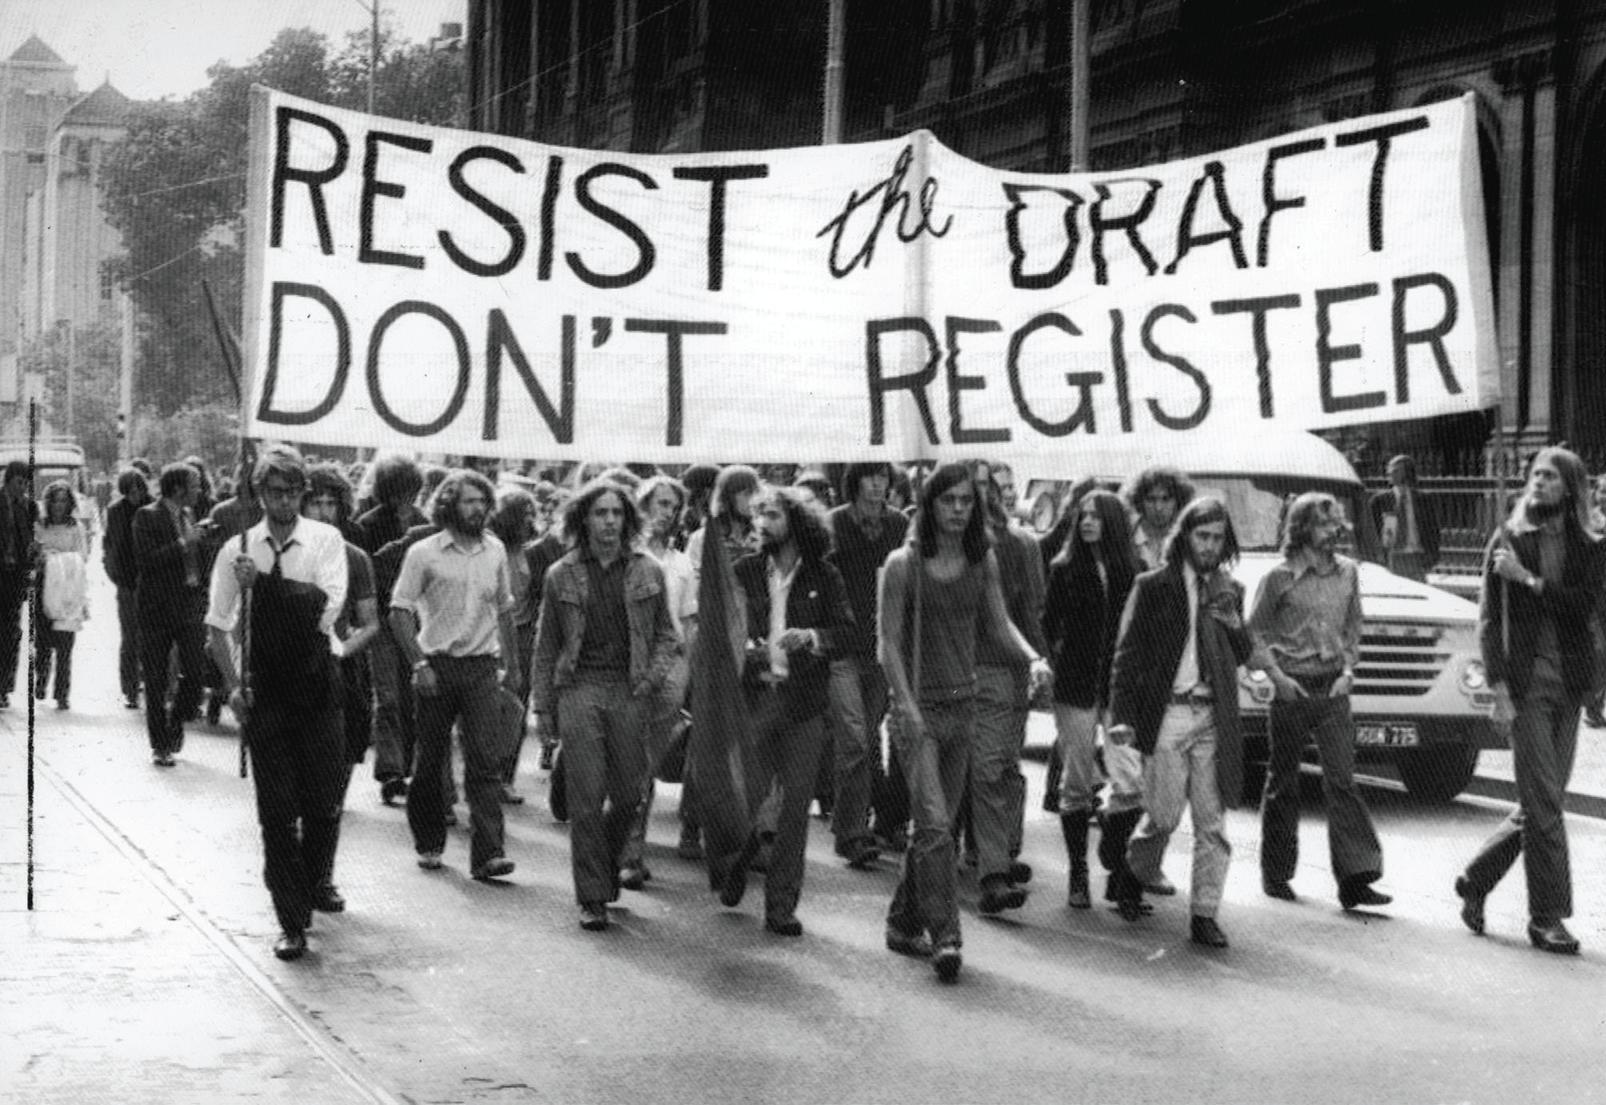 an essay on the antiwar movement against vietnam in the united states Focusing on the united states' anti-vietnam  has historicised this women's antiwar organisation of the 1960s united  movement against the vietnam war at.